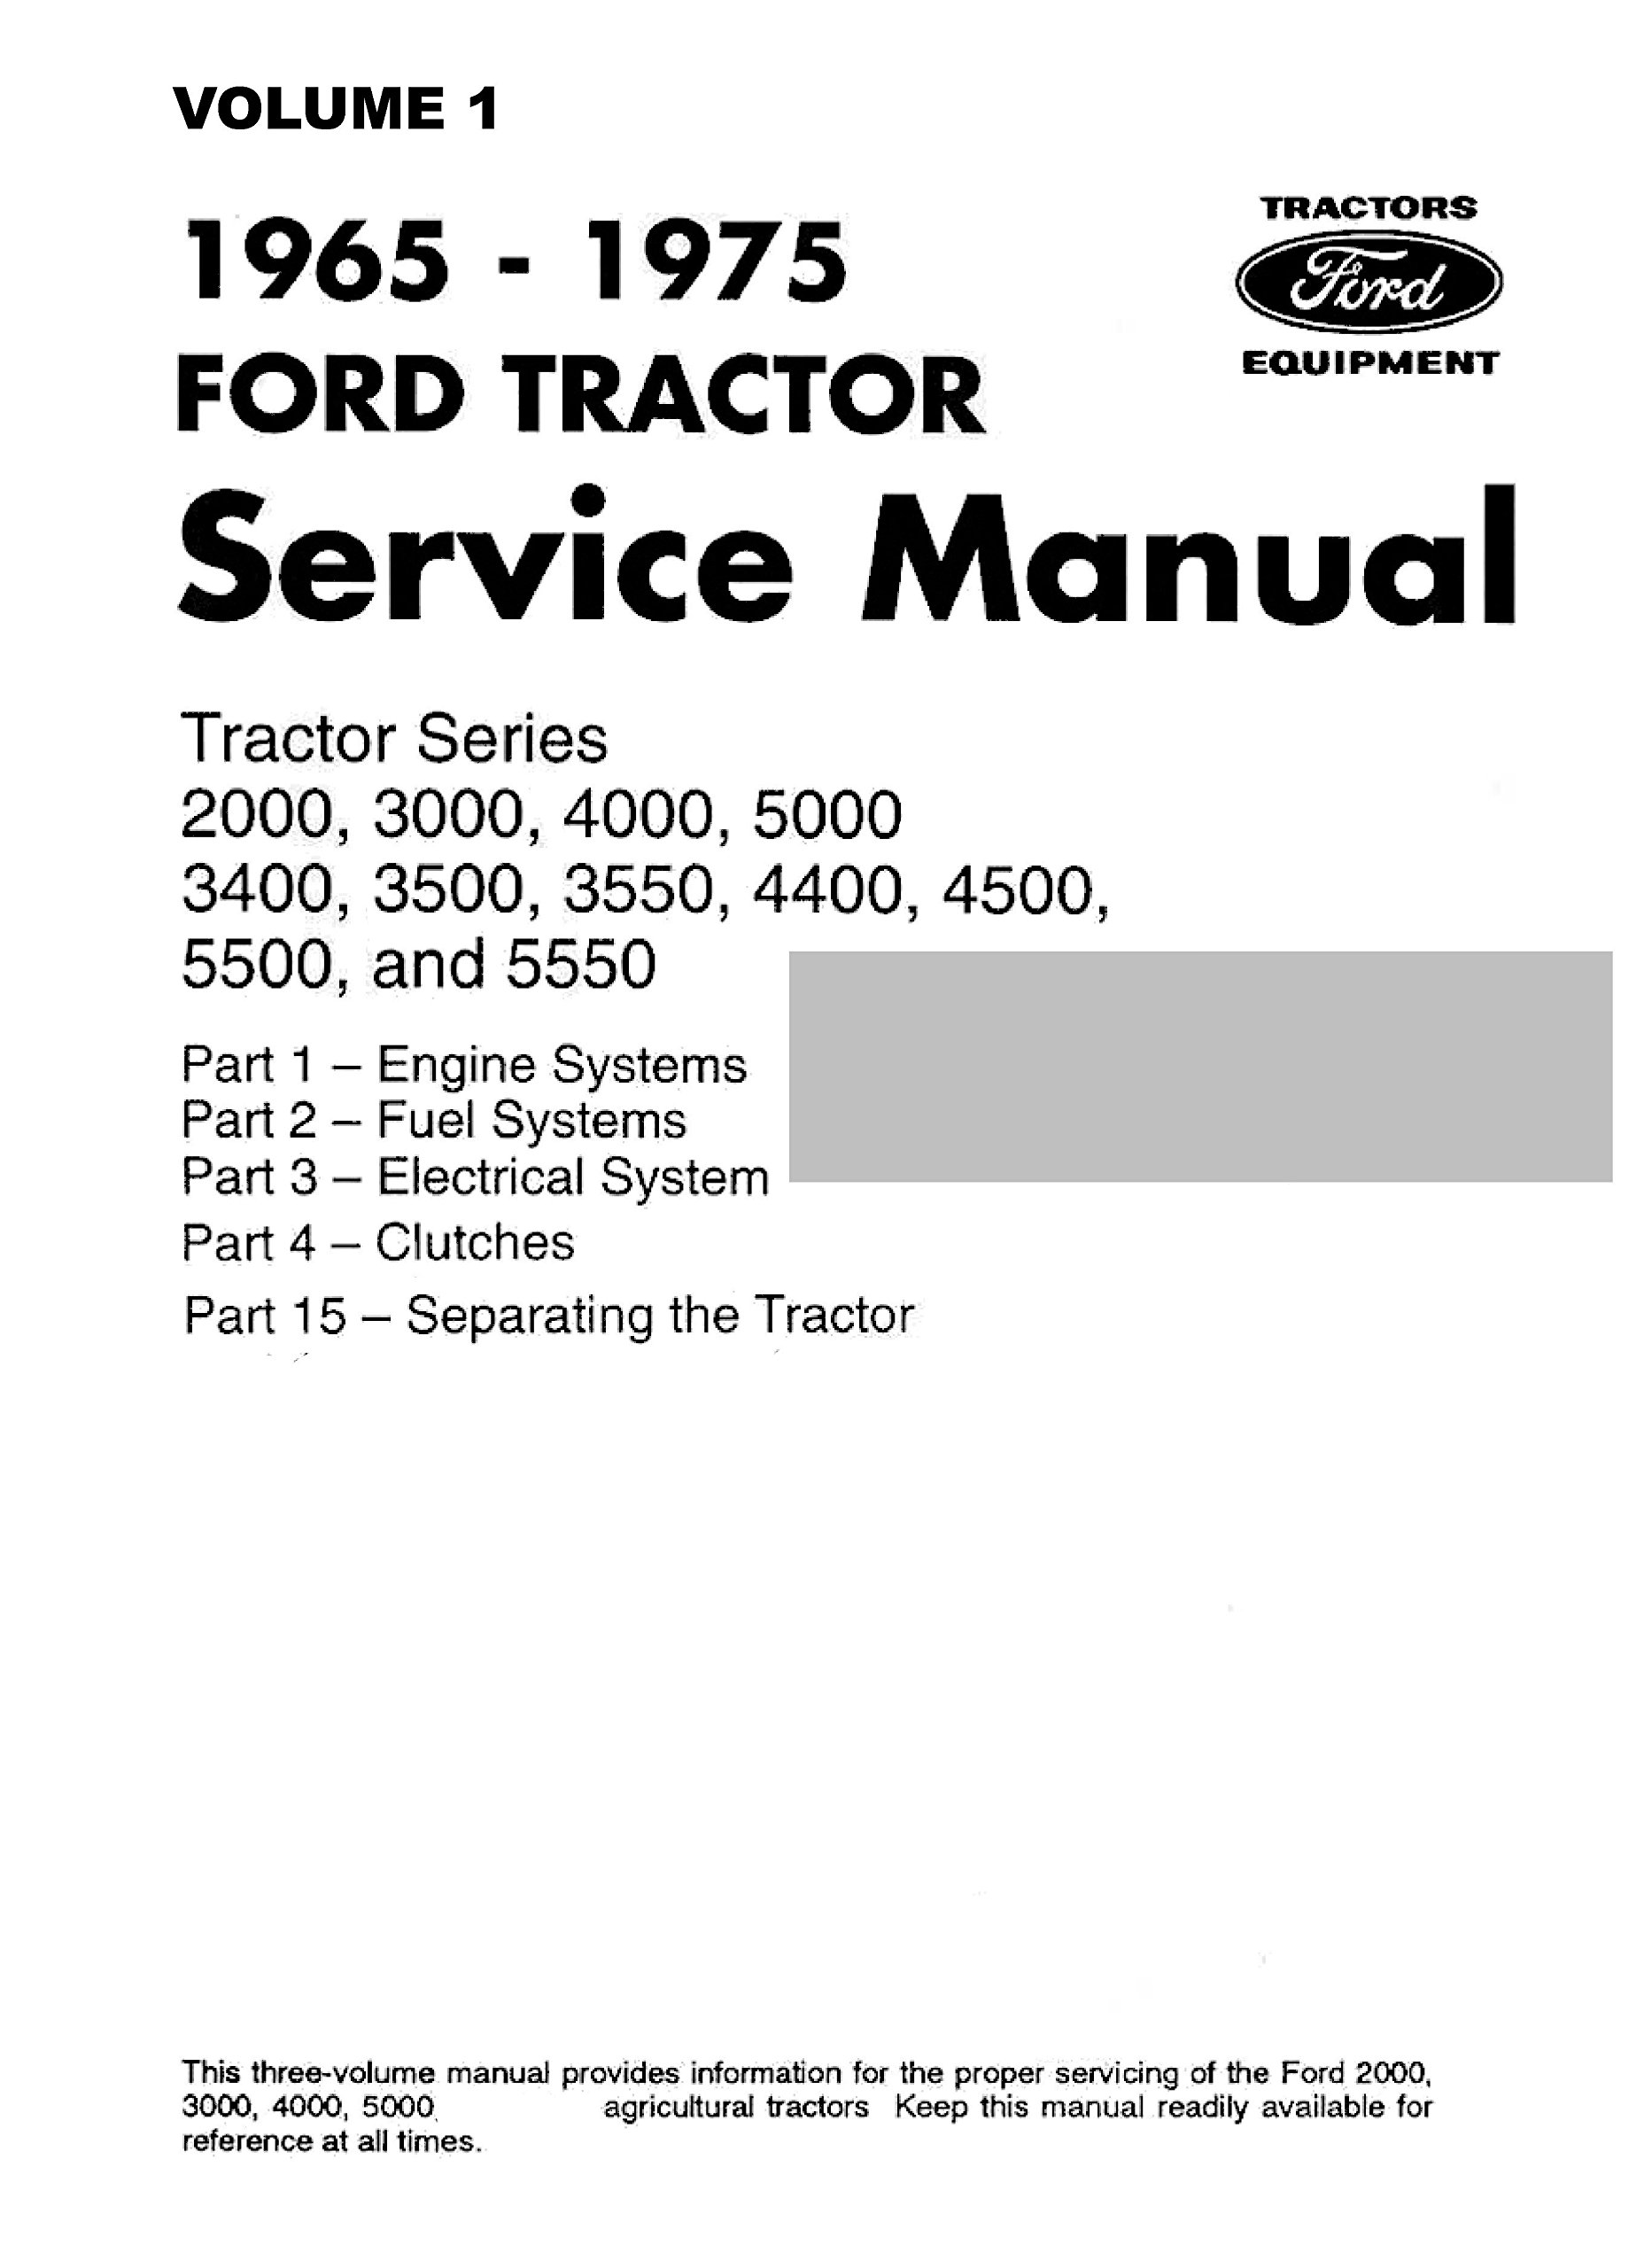 ford tractor series 2000, 3000, 4000, 5000, 3400, 3500, 3550, 4400 ford 4630 tractor wiring diagram ford tractor series 2000, 3000, 4000, 5000, 3400, 3500, 3550, 4400, 4500, 5500, 5550 service manual paperback 1979